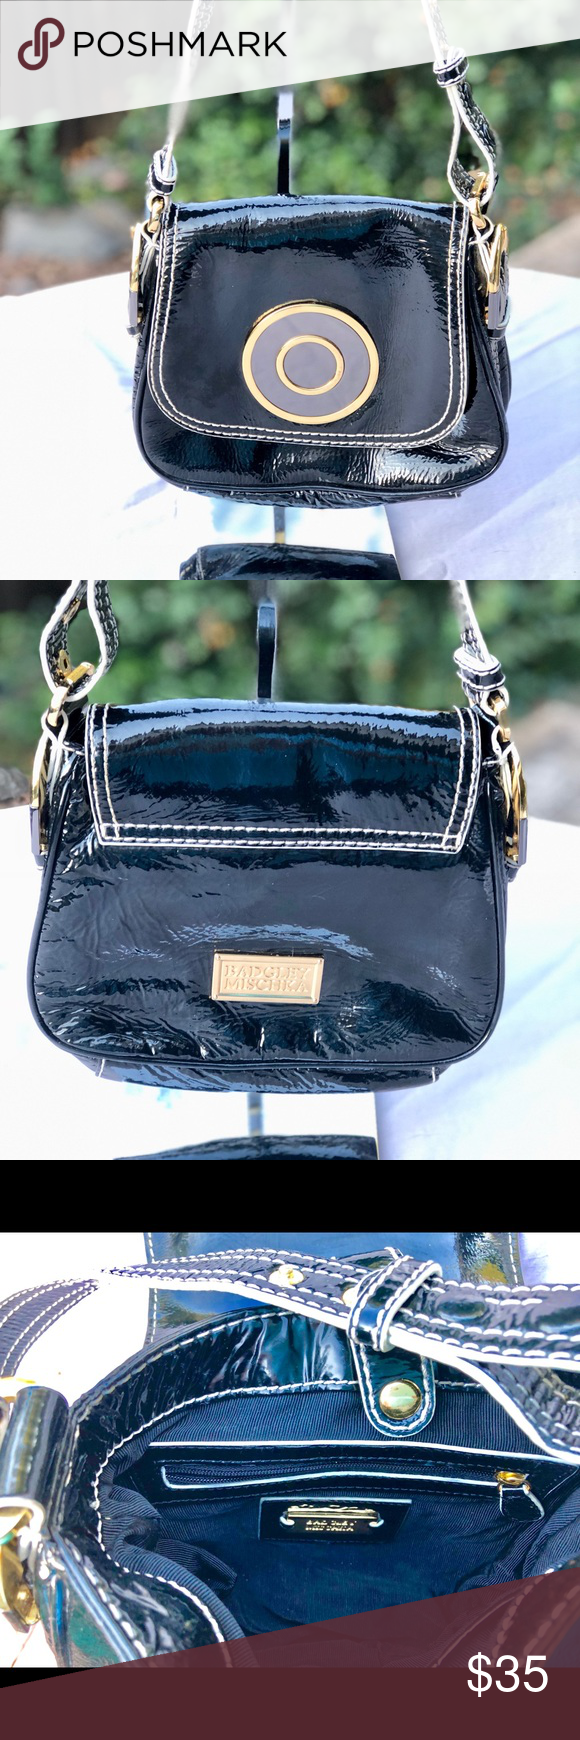 00fb8042b1a Badgley Mischka Black Patent Leather Satchel This is a beautiful black  patent leather satchel designed by